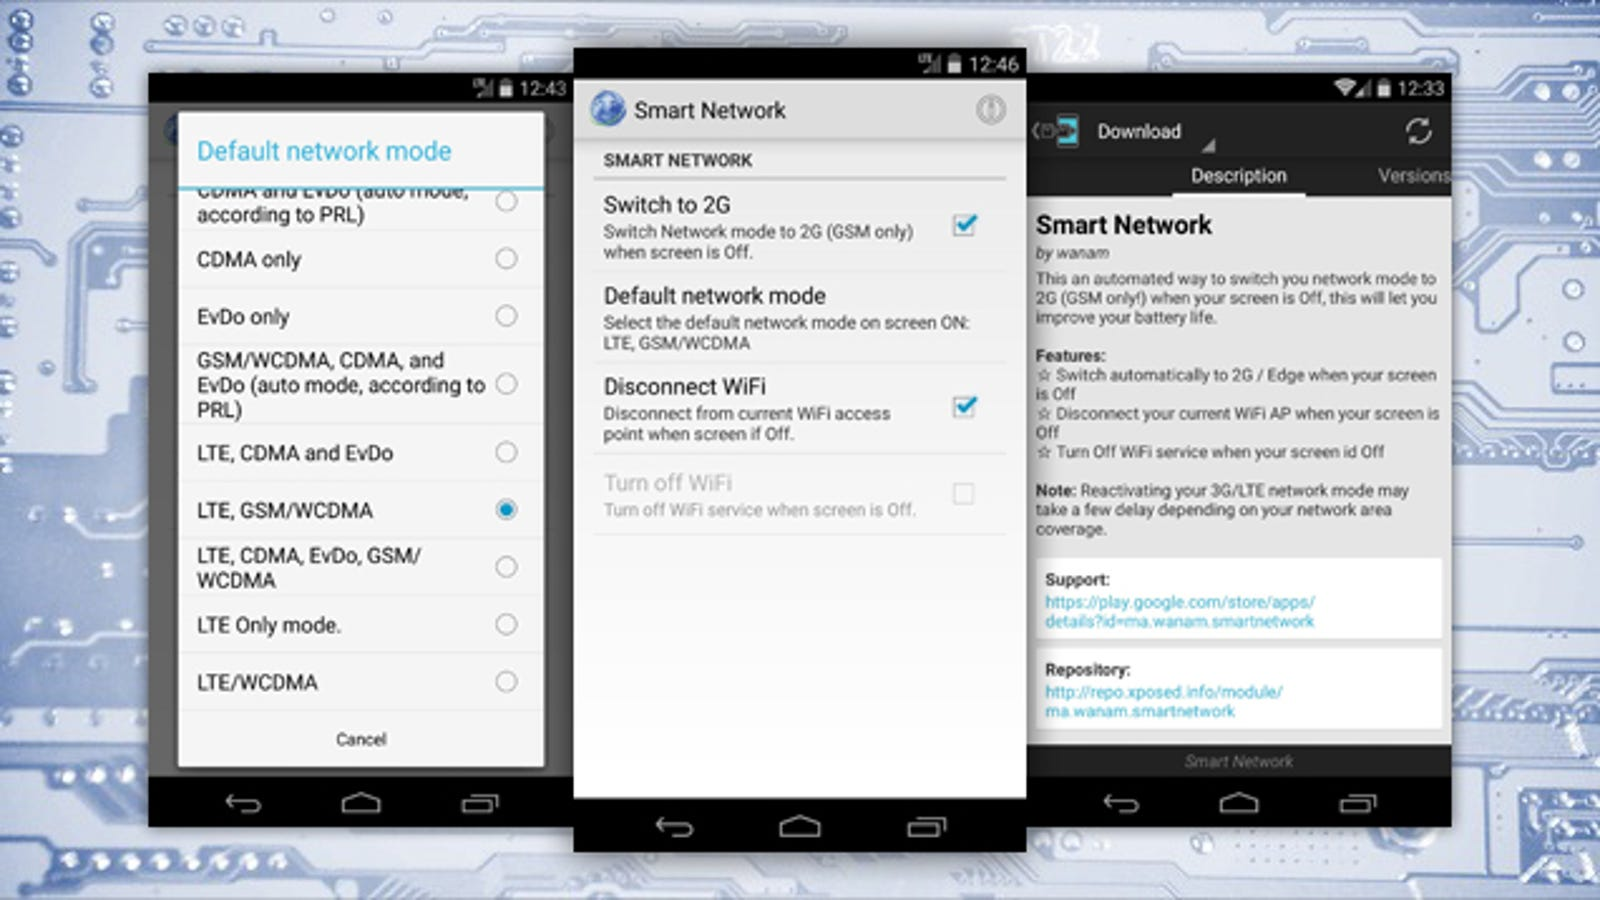 Smart Network Saves Battery By Switching to 2G When Your Screen Is Off